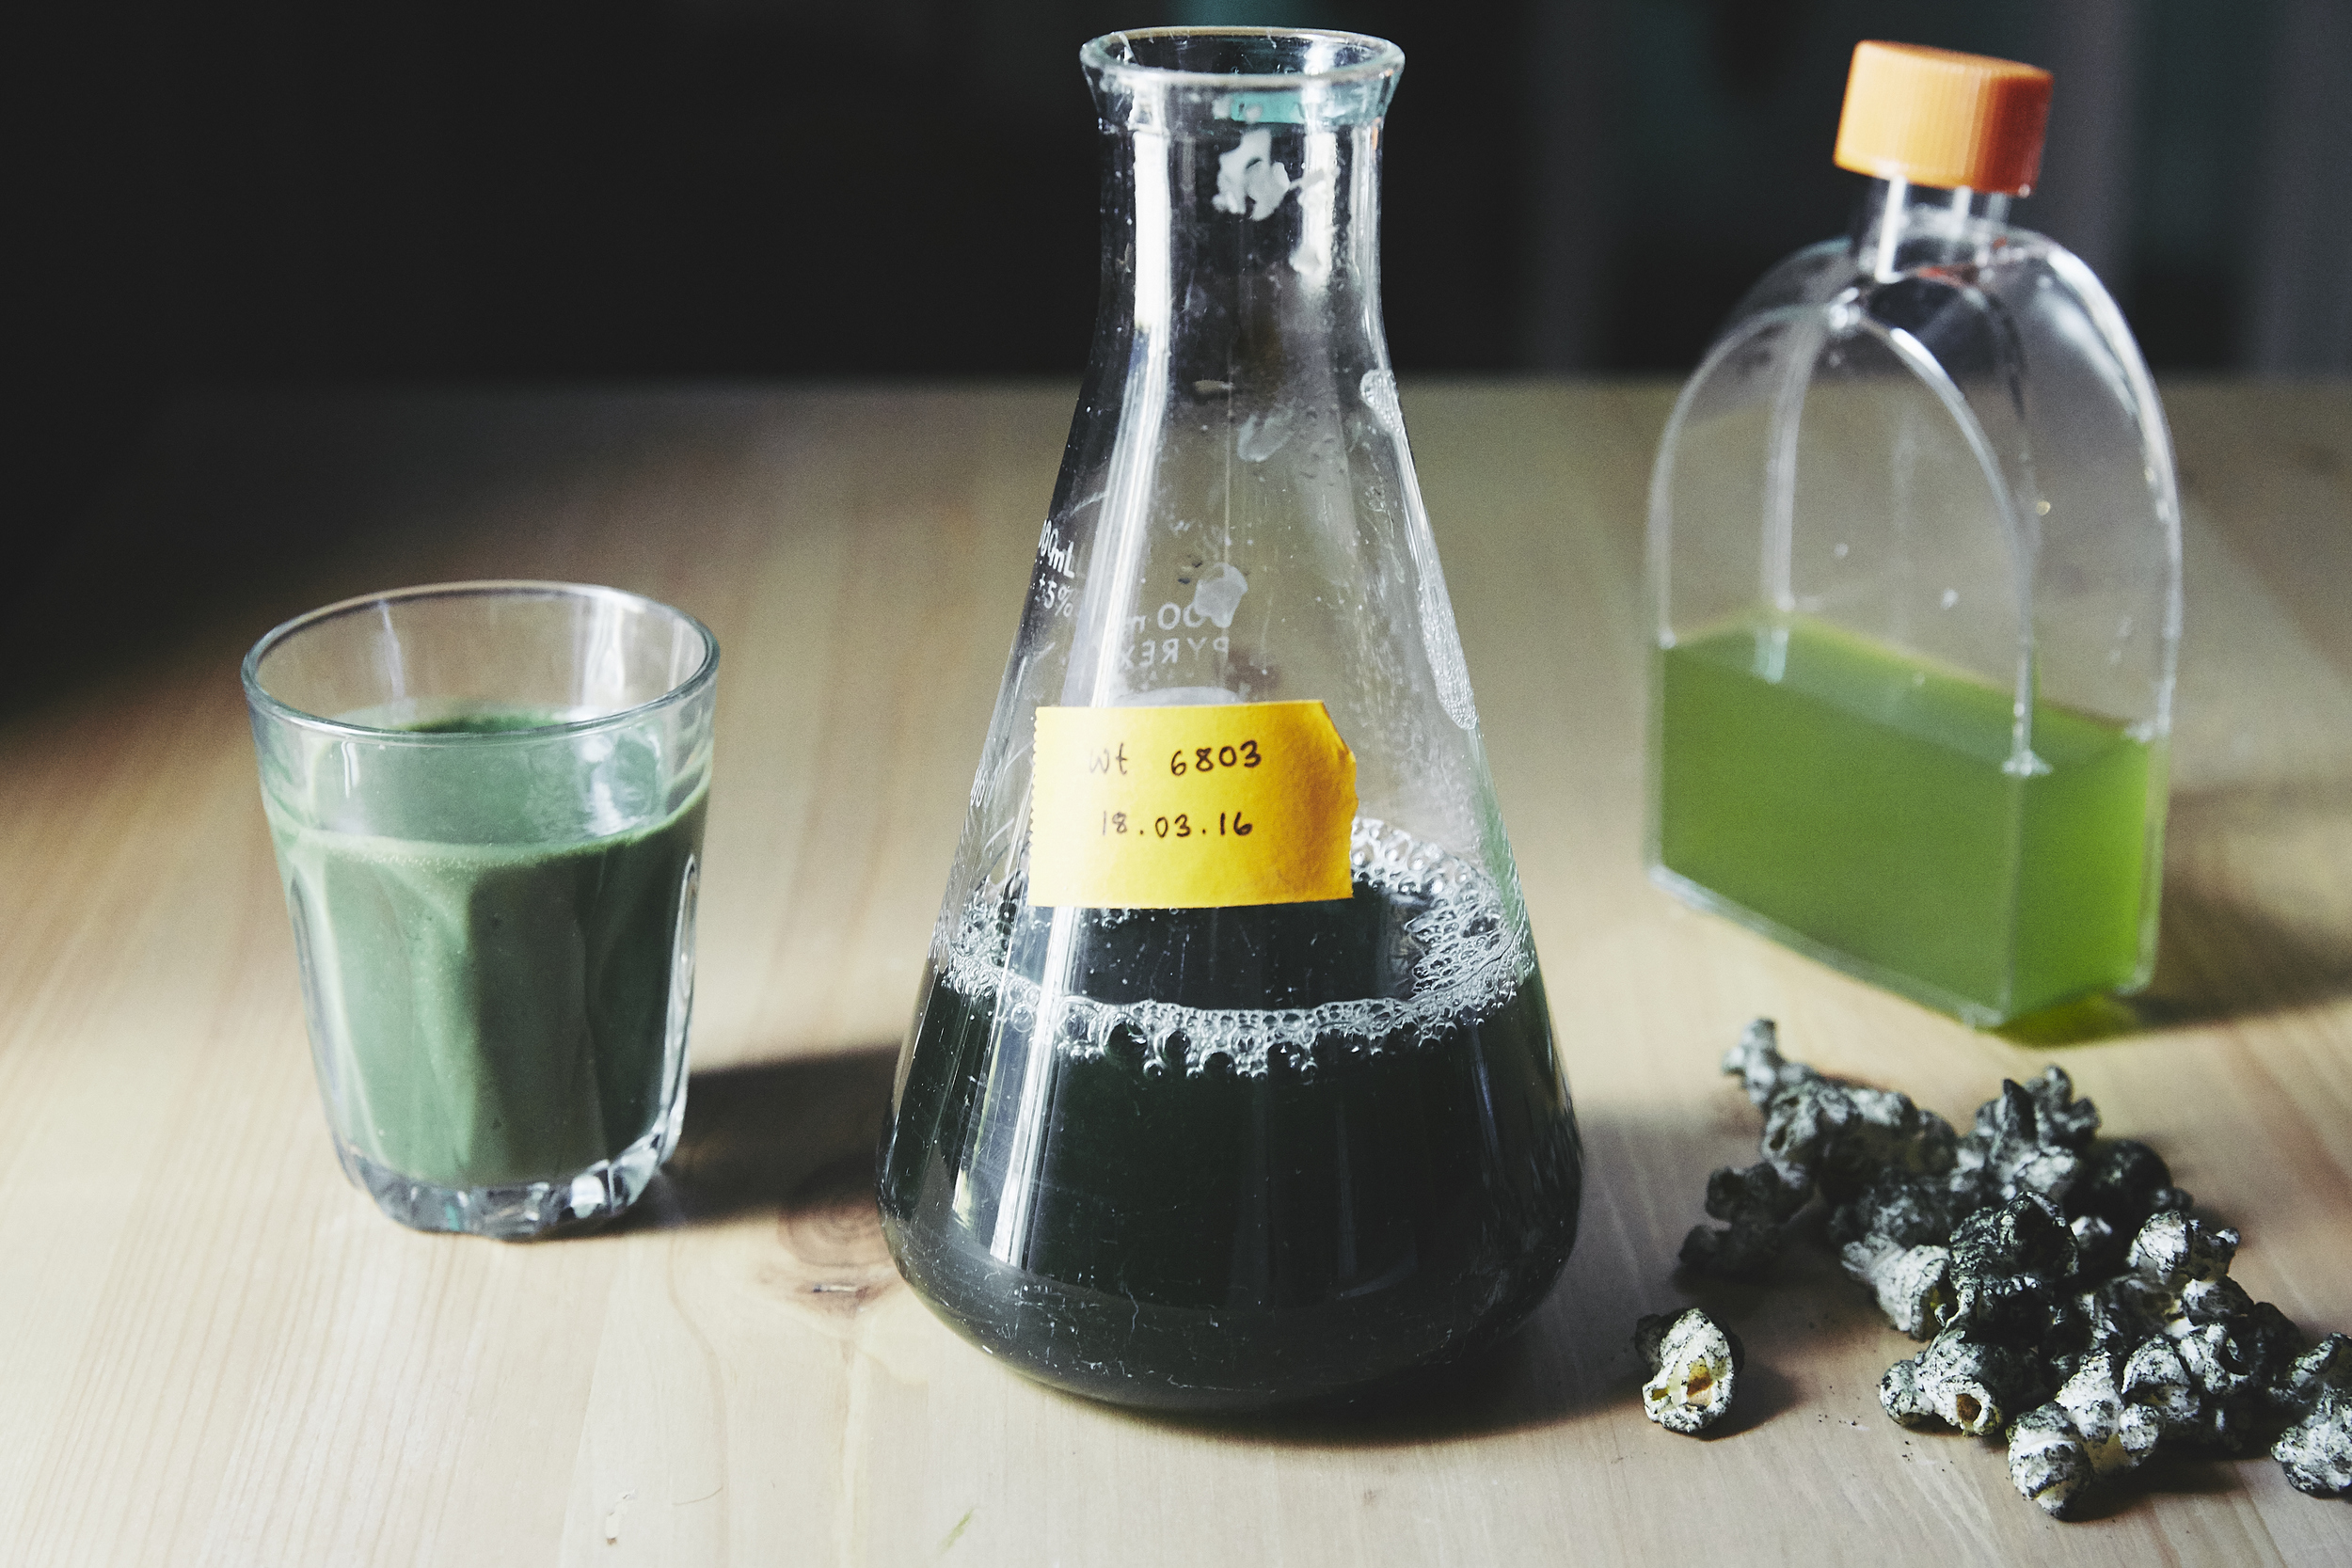 Some cues for the senses: visual, taste, smell - all ALGAE -to start to imagine what a completely different bioeconomy food future may feel like